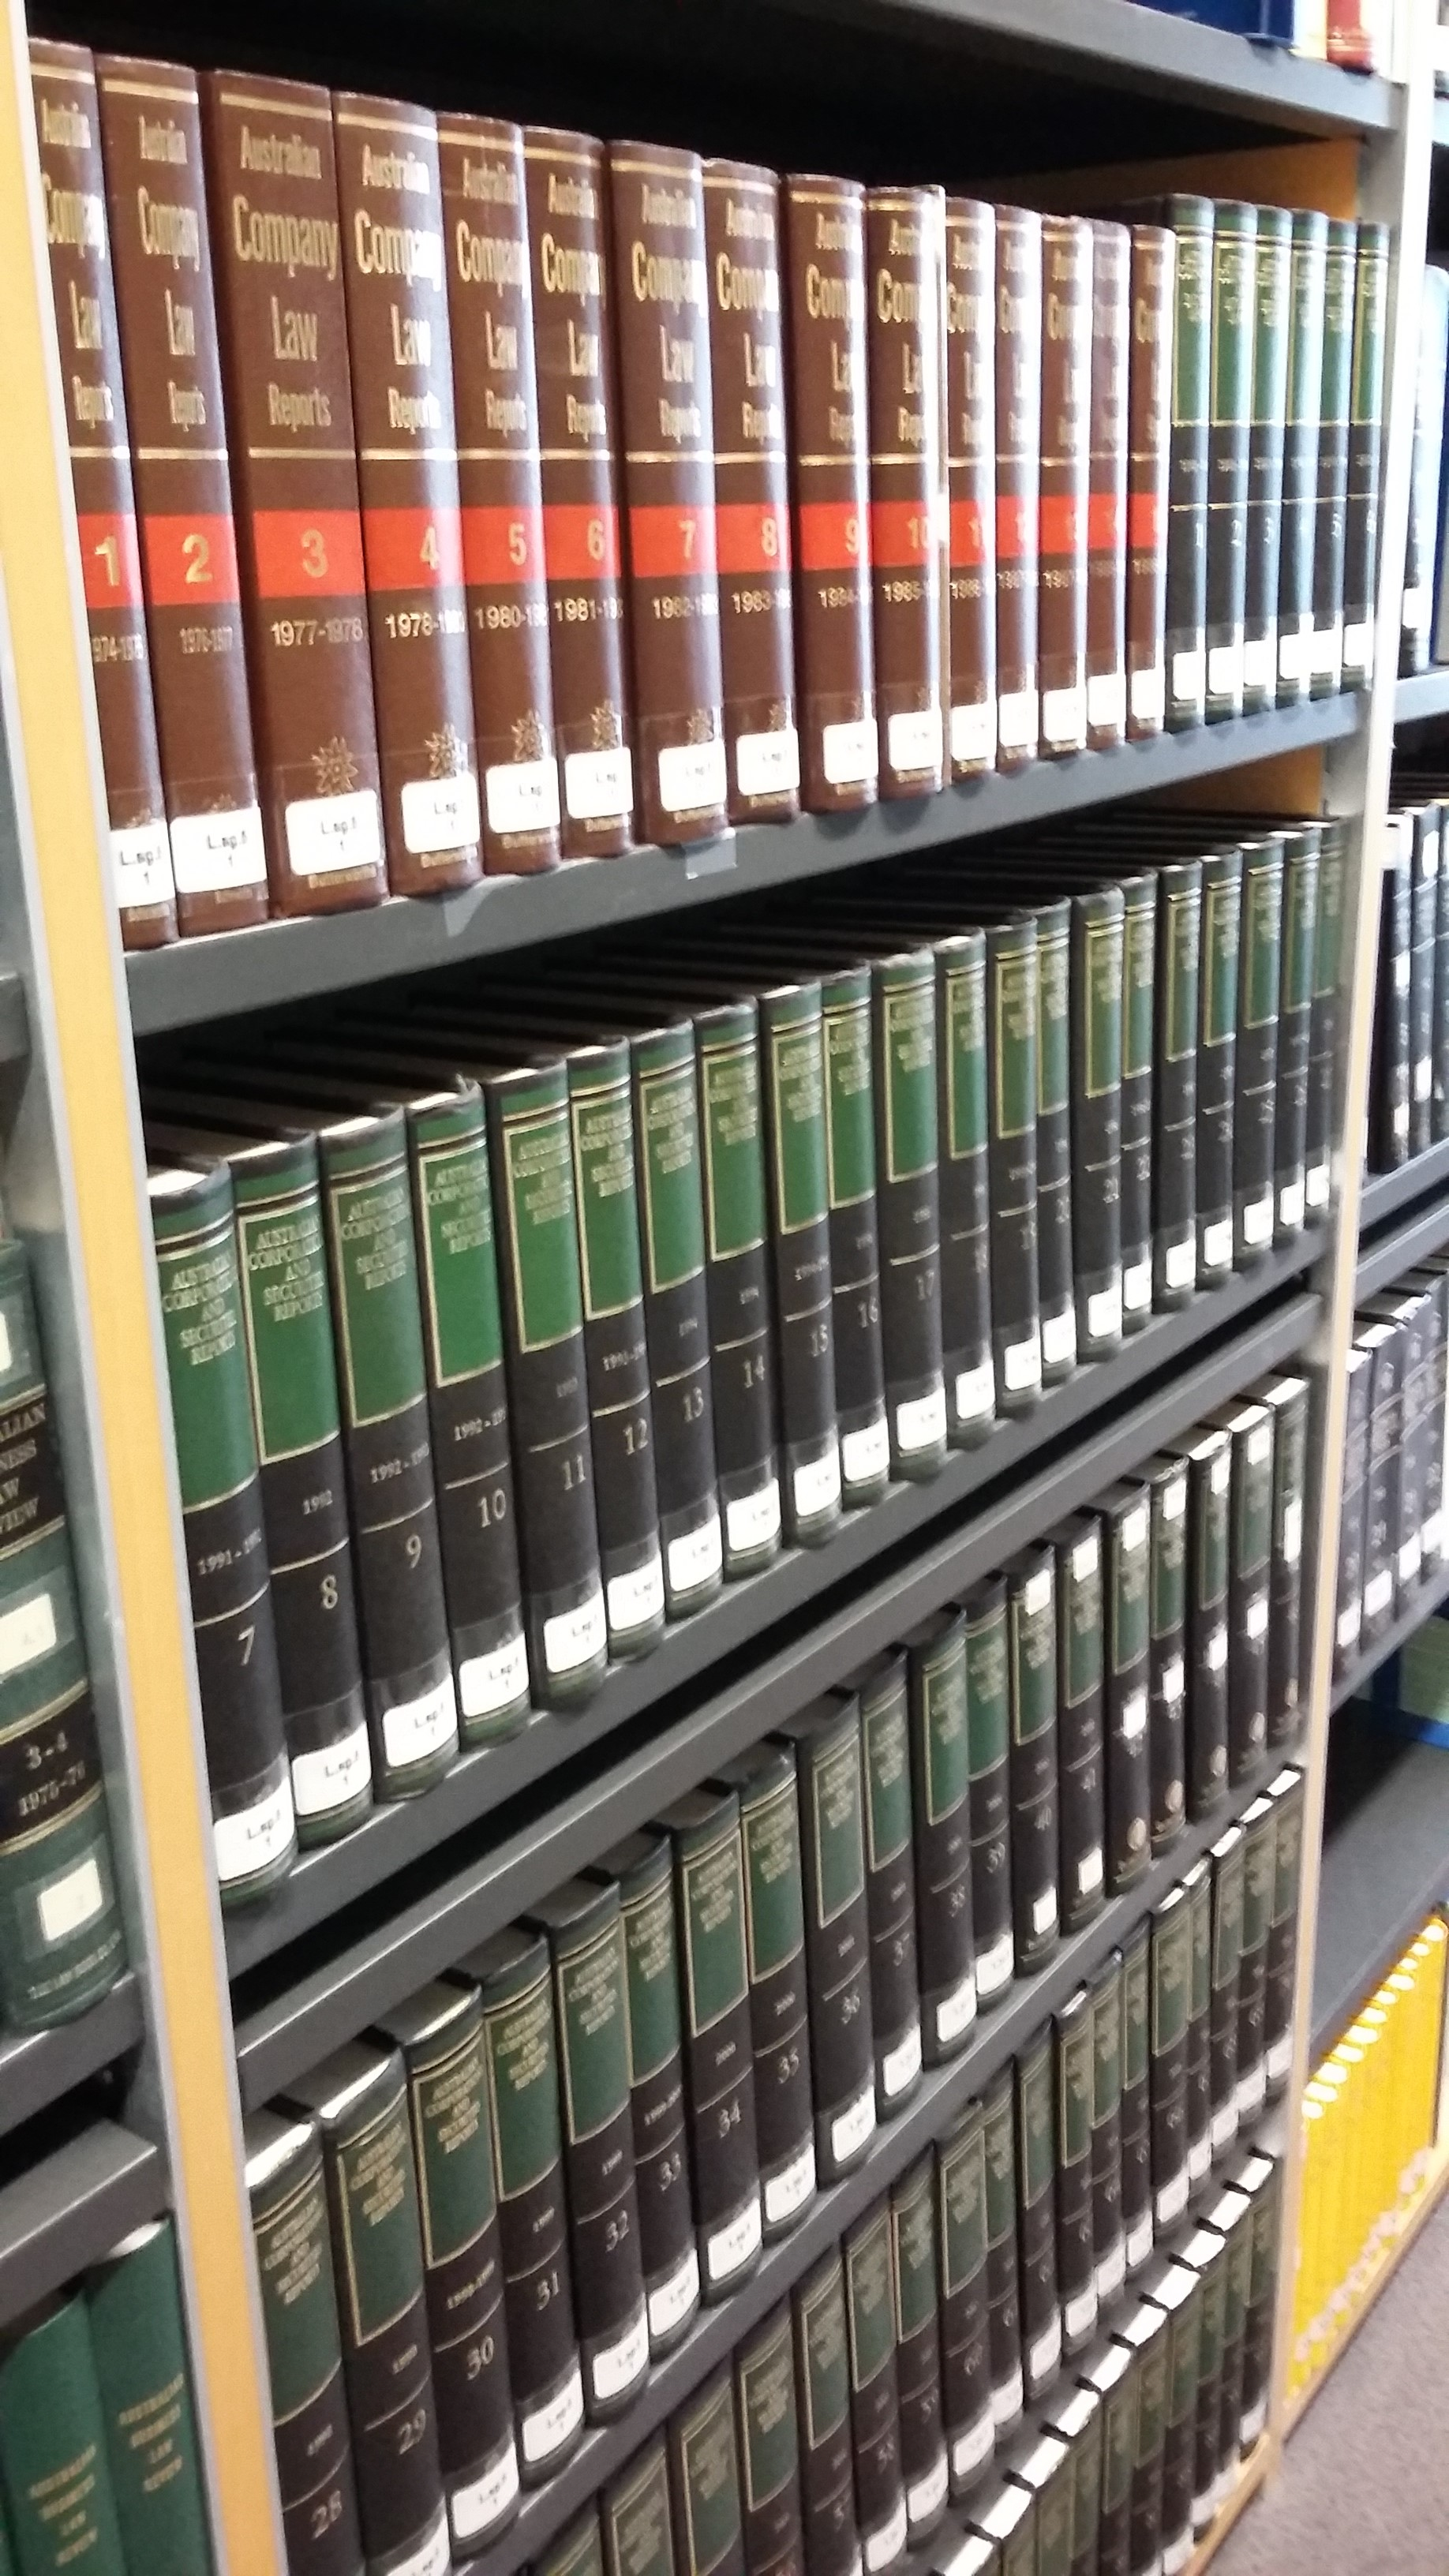 Photo of two sets of Australian law reports on shelves in the Squire Law Library. One set is brown and red - another is black and green.